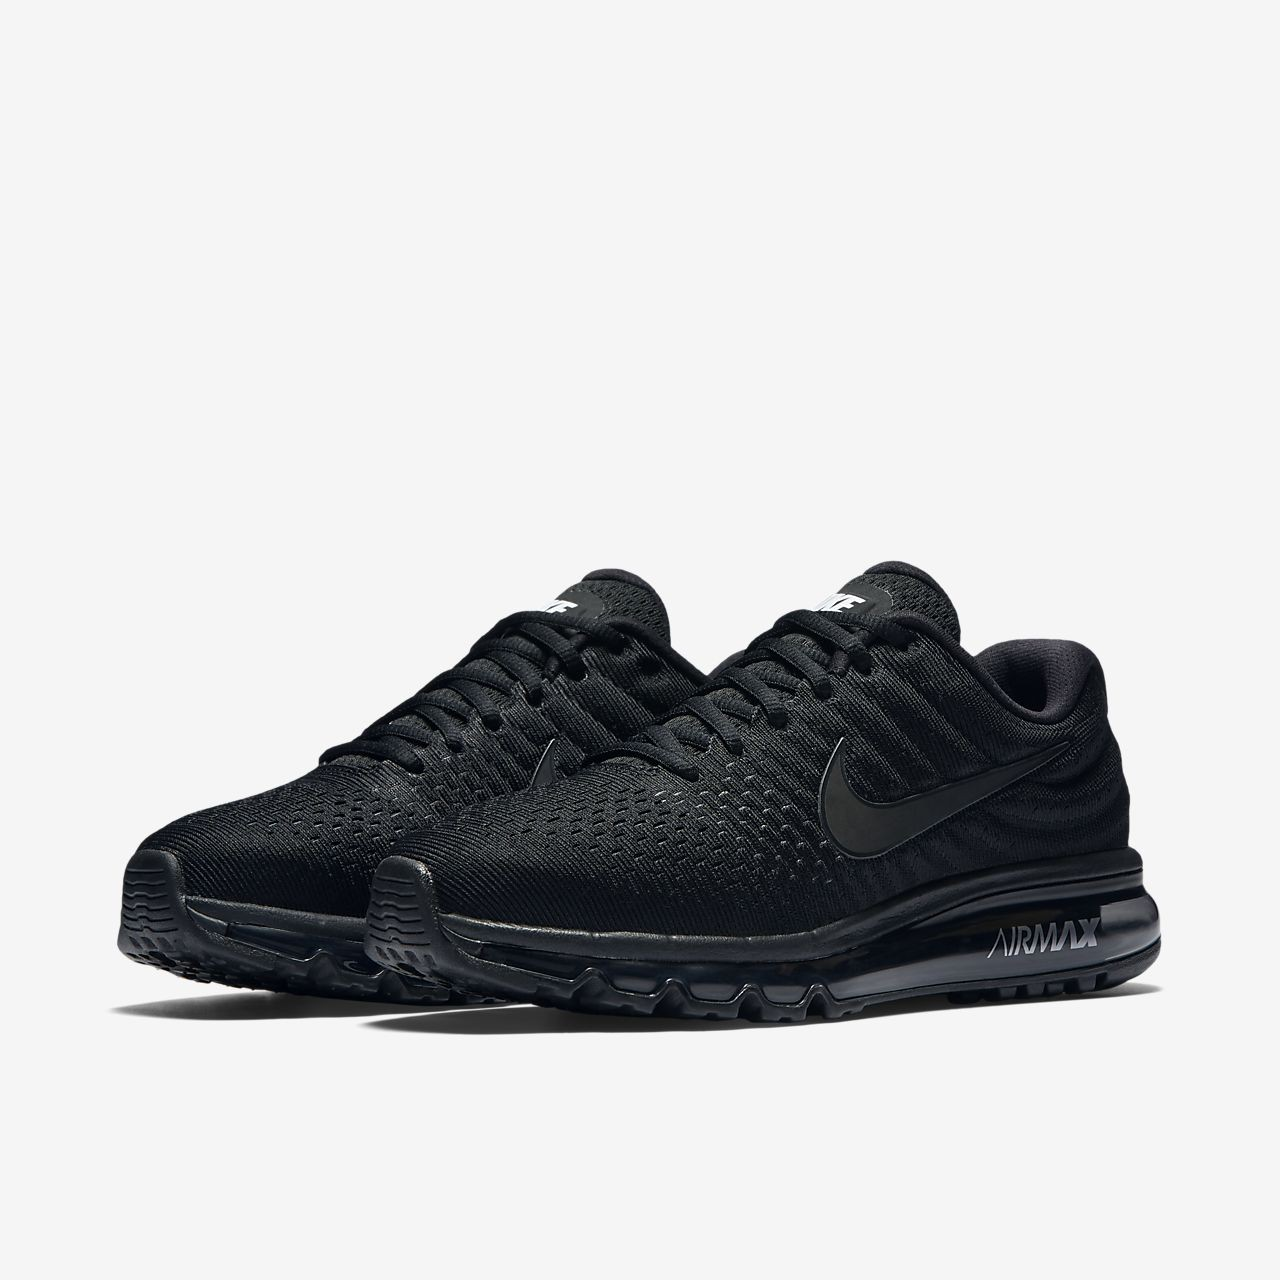 basket nike air max homme 2017 noir